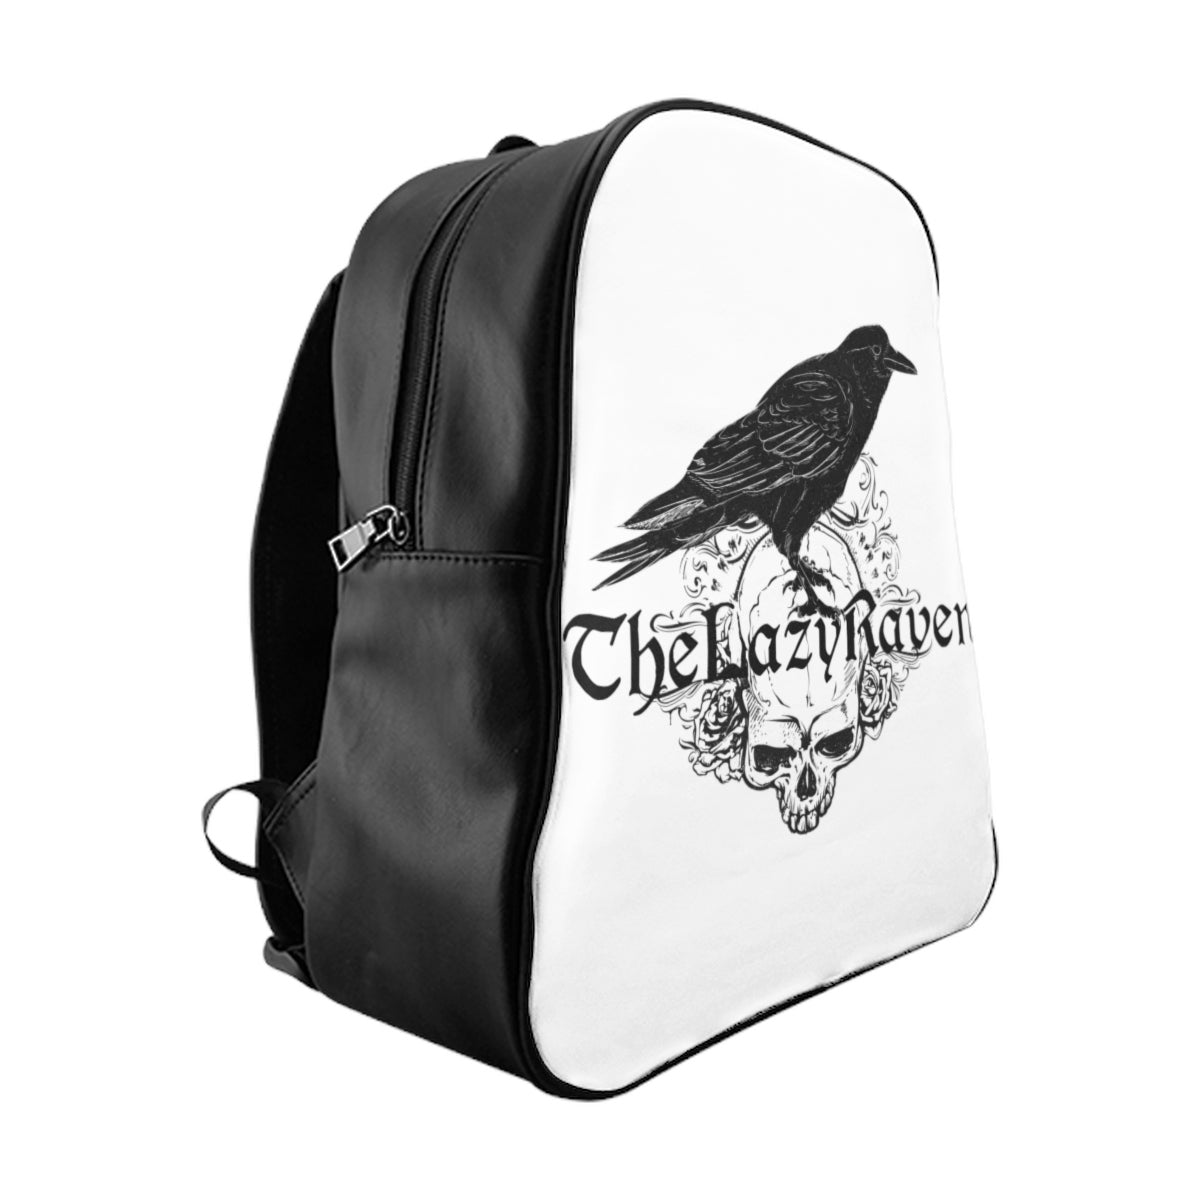 Lazy Raven Backpack - The Lazy Raven